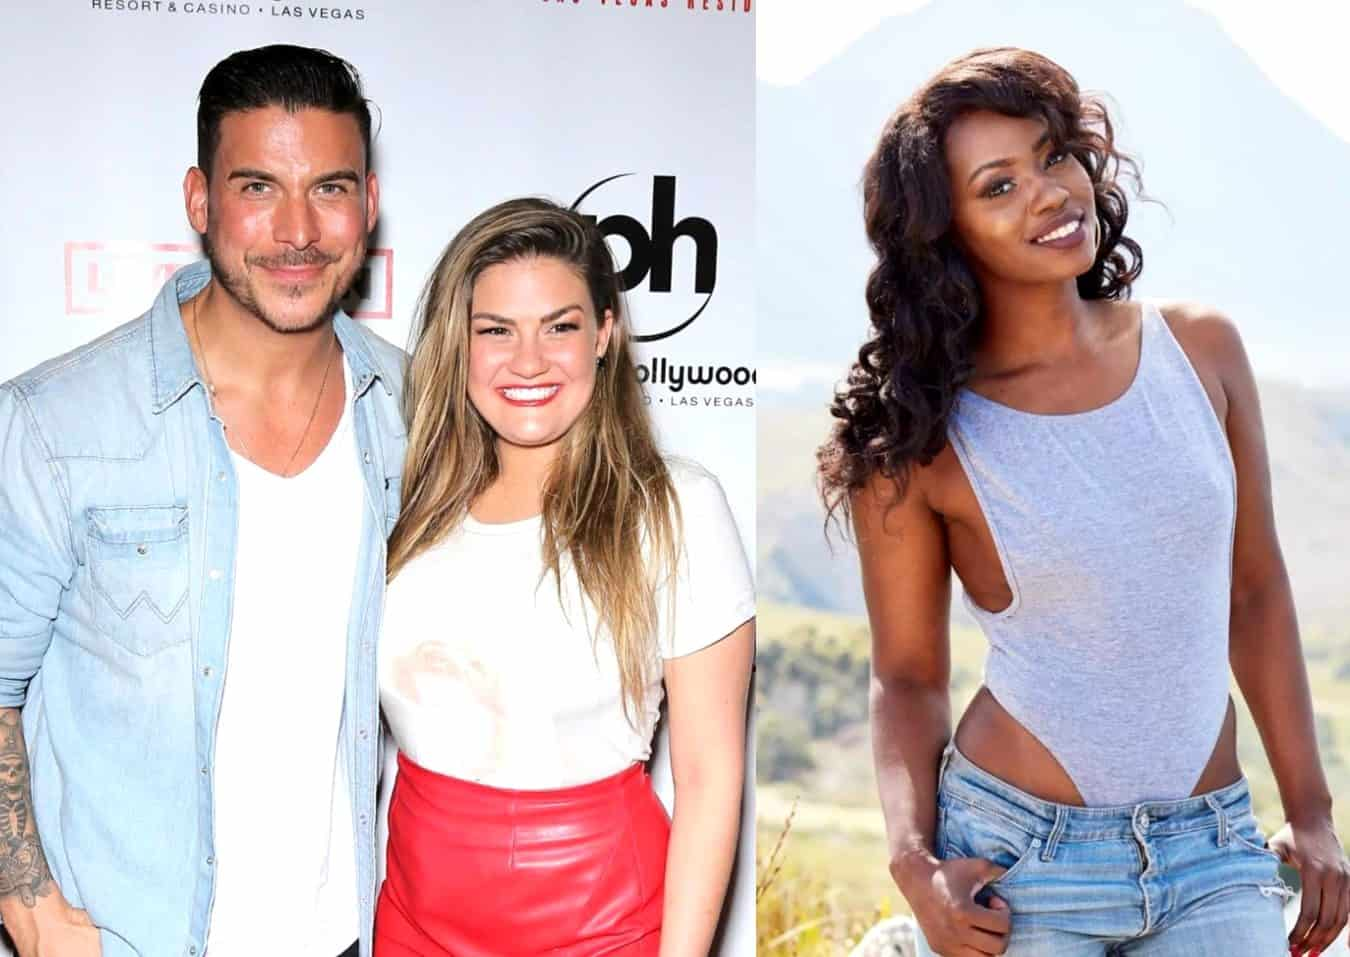 Jax Taylor's Old Tweet Bashing Faith Stowers Resurfaces as Brittany Cartwright Addresses Claims She Made Racially Insensitive Hair Comment to Former Vanderpump Rules Costar